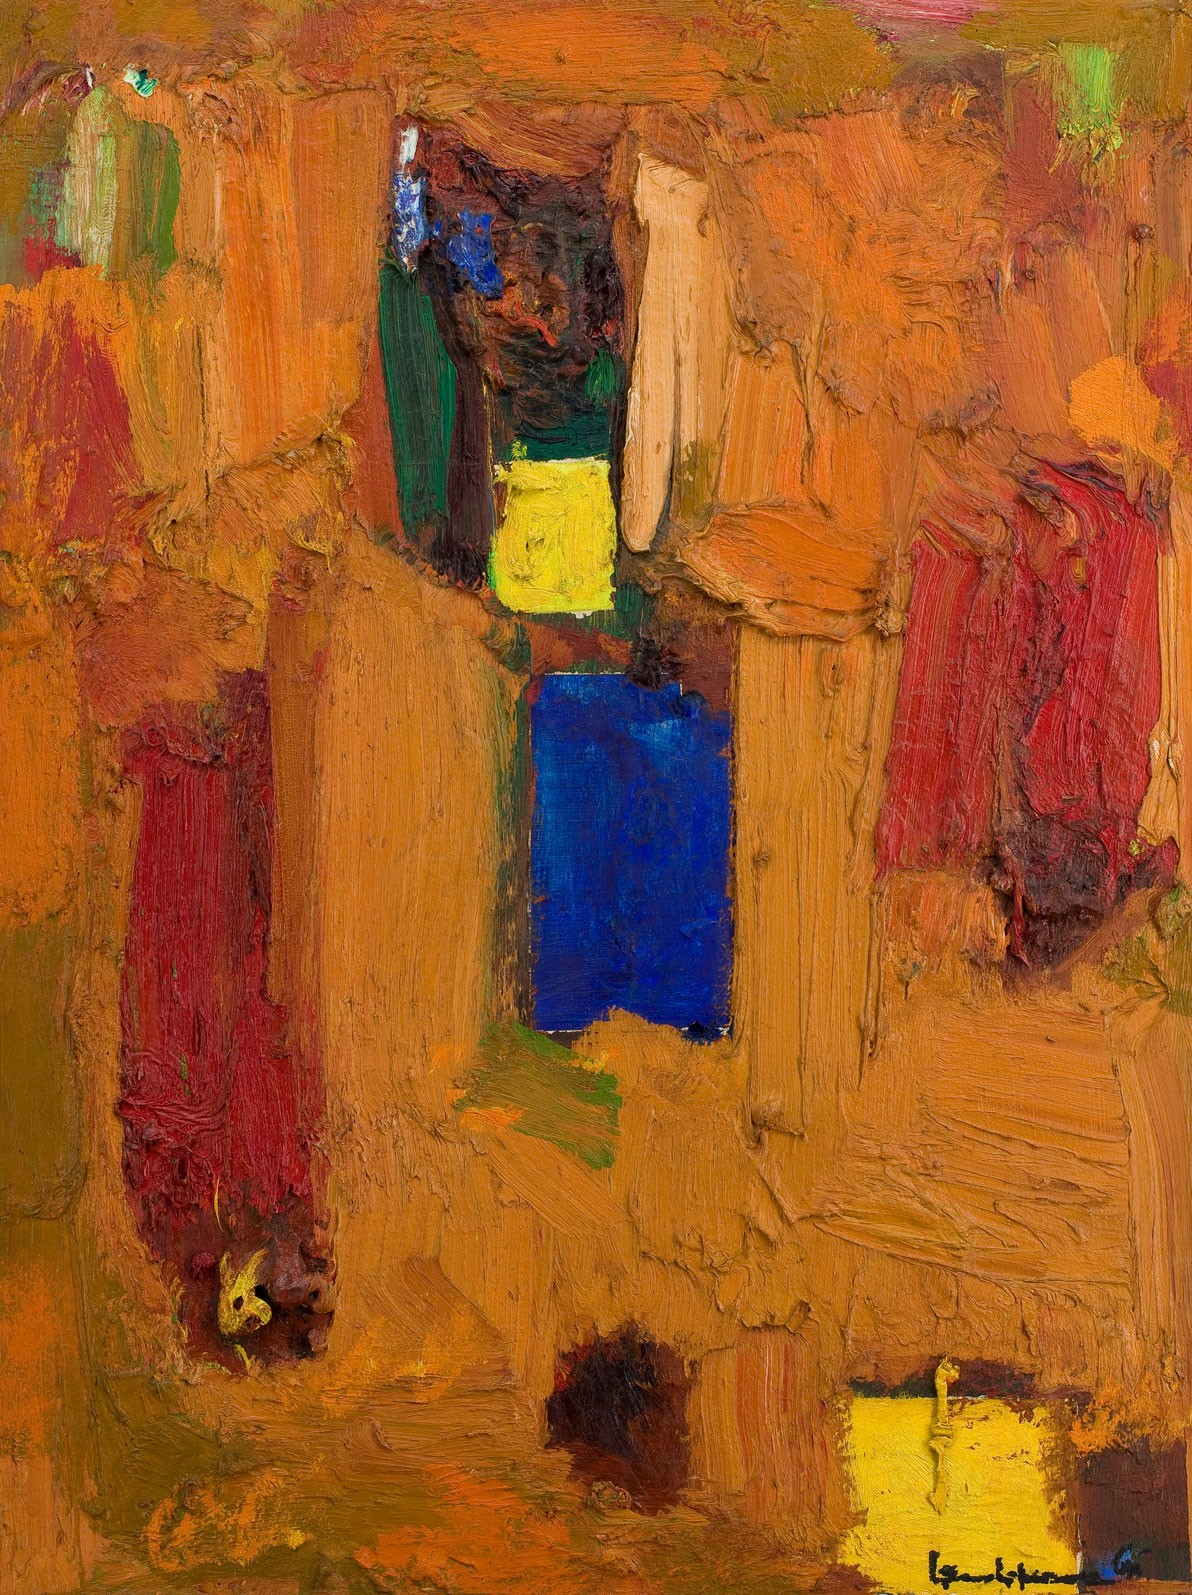 In this work by Hans Hofmann, thick, richly painted orange brushstrokes overlap on the canvas and act as a background to the bursts of red, blue, green, and yellow forms